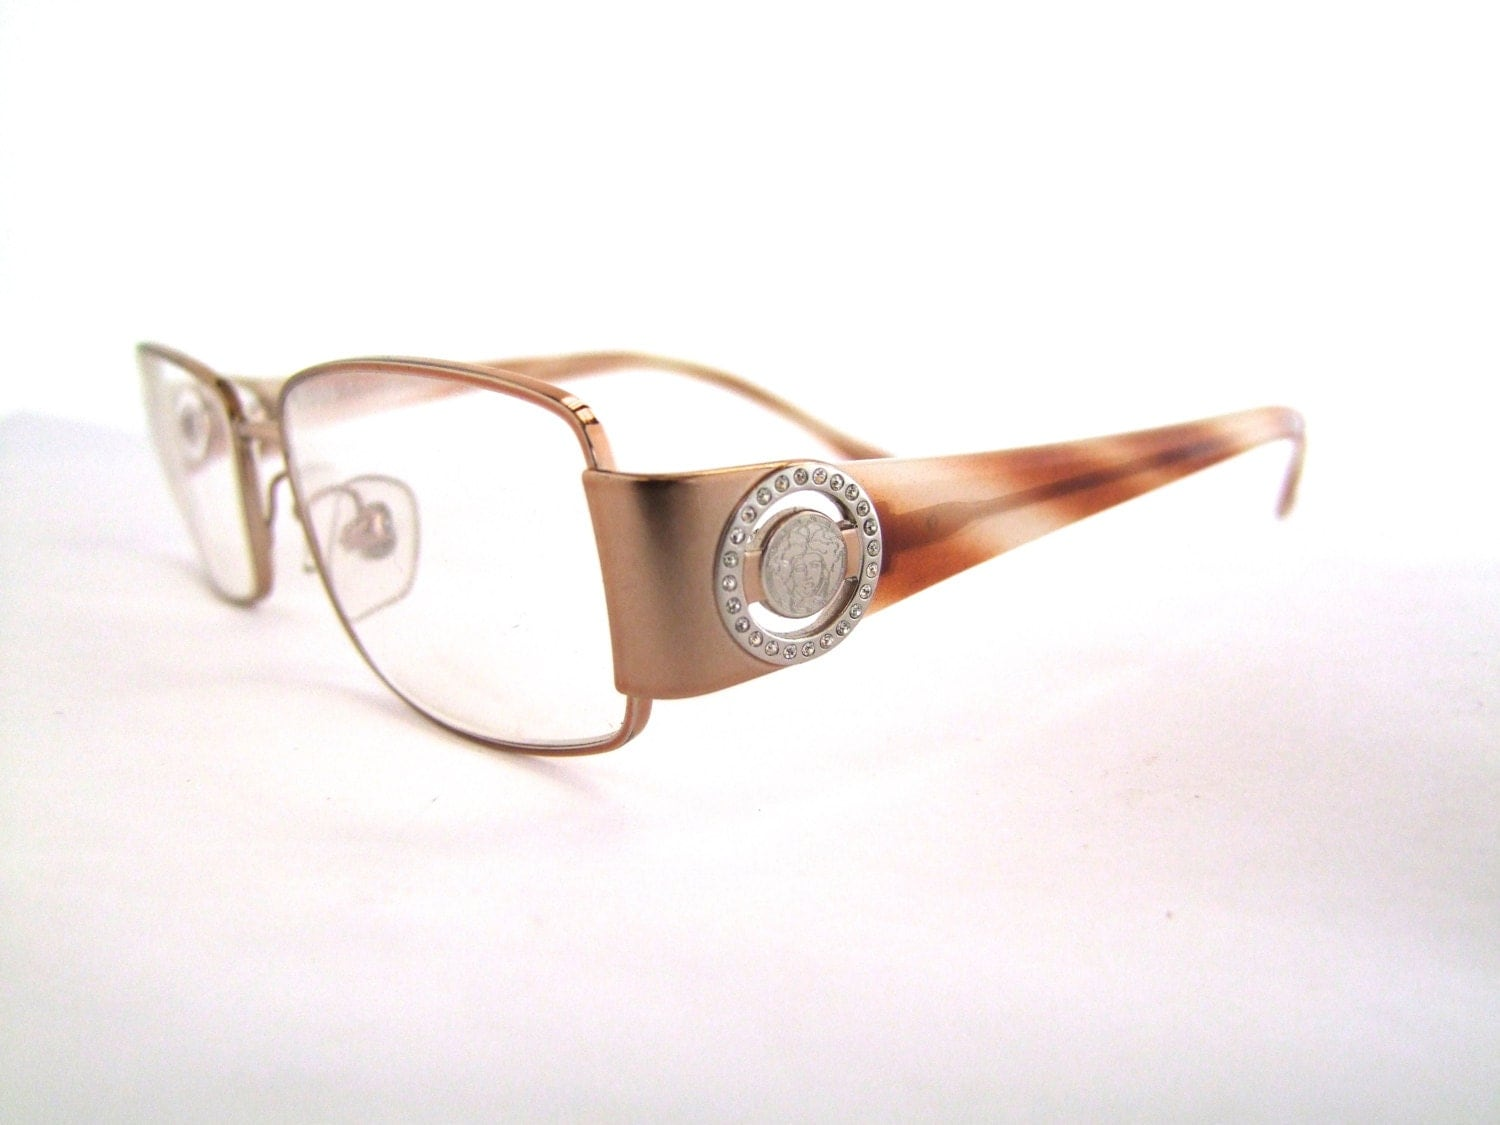 versace eyeglasses with rhinestones by